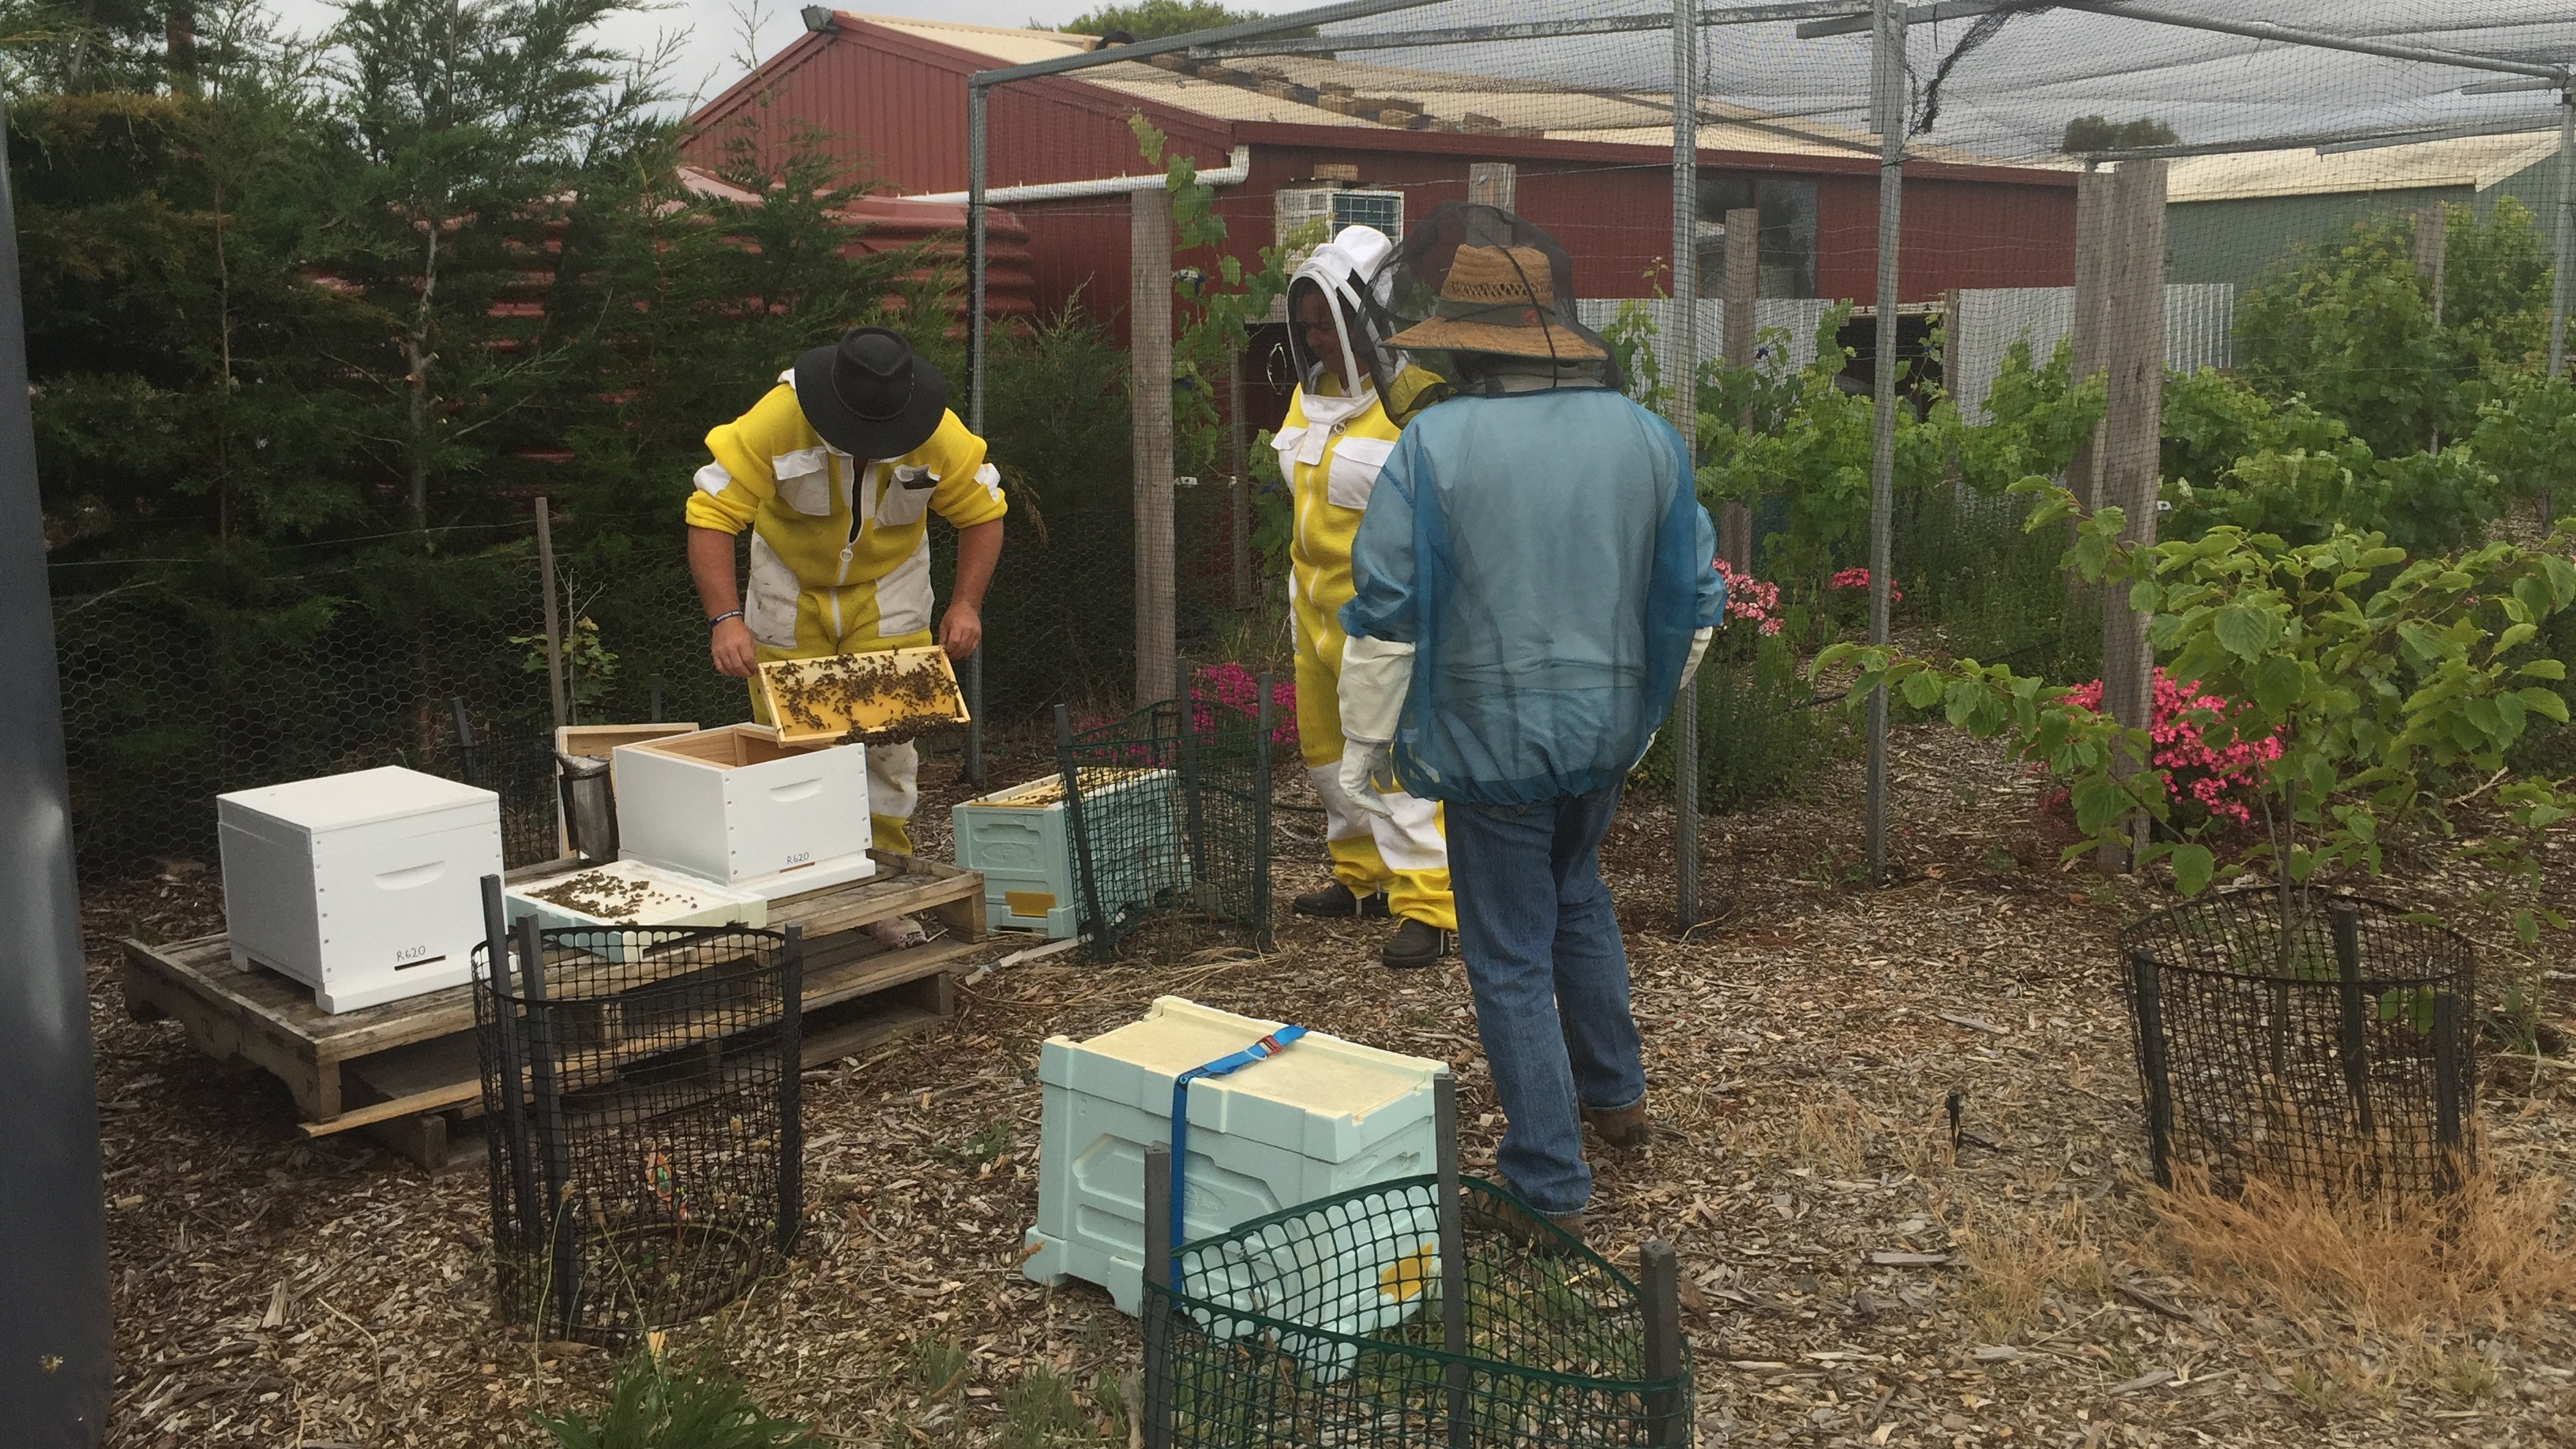 Hive – of activity